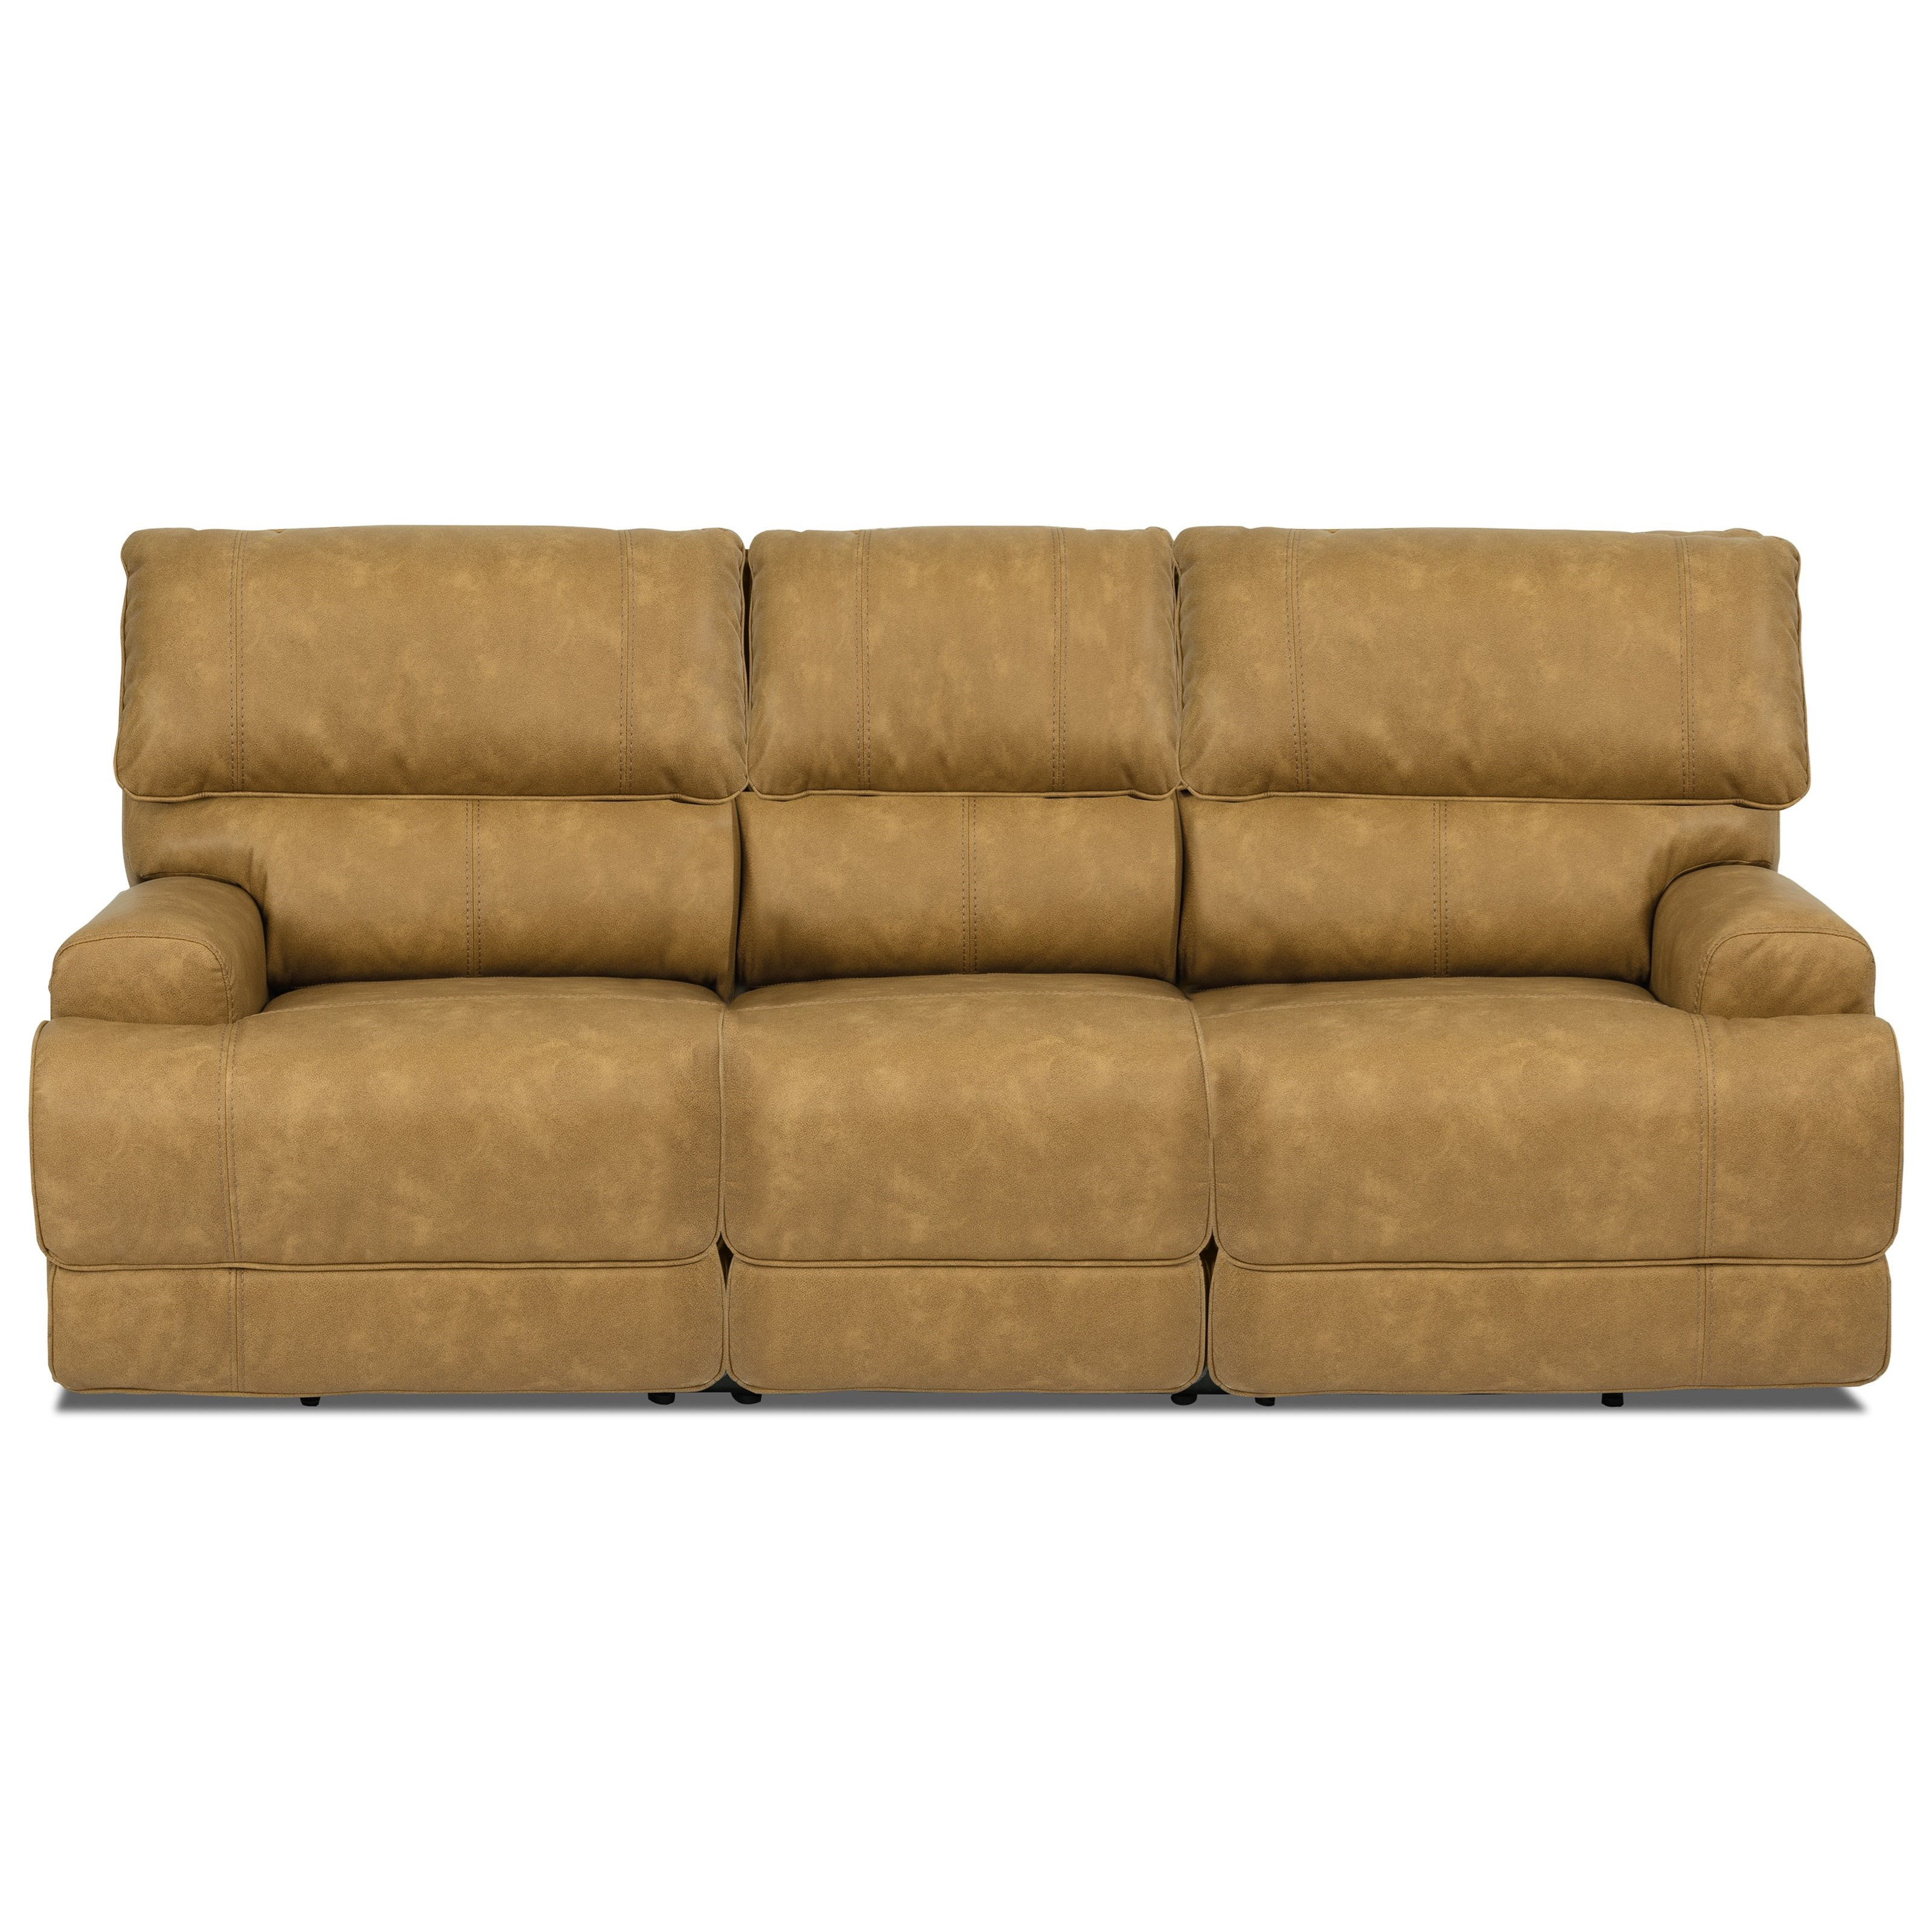 Flexsteel Latitudes Floyd 1879 62ph Power Reclining Sofa With Power Headrests And Usb Ports Dunk Bright Furniture Reclining Sofas